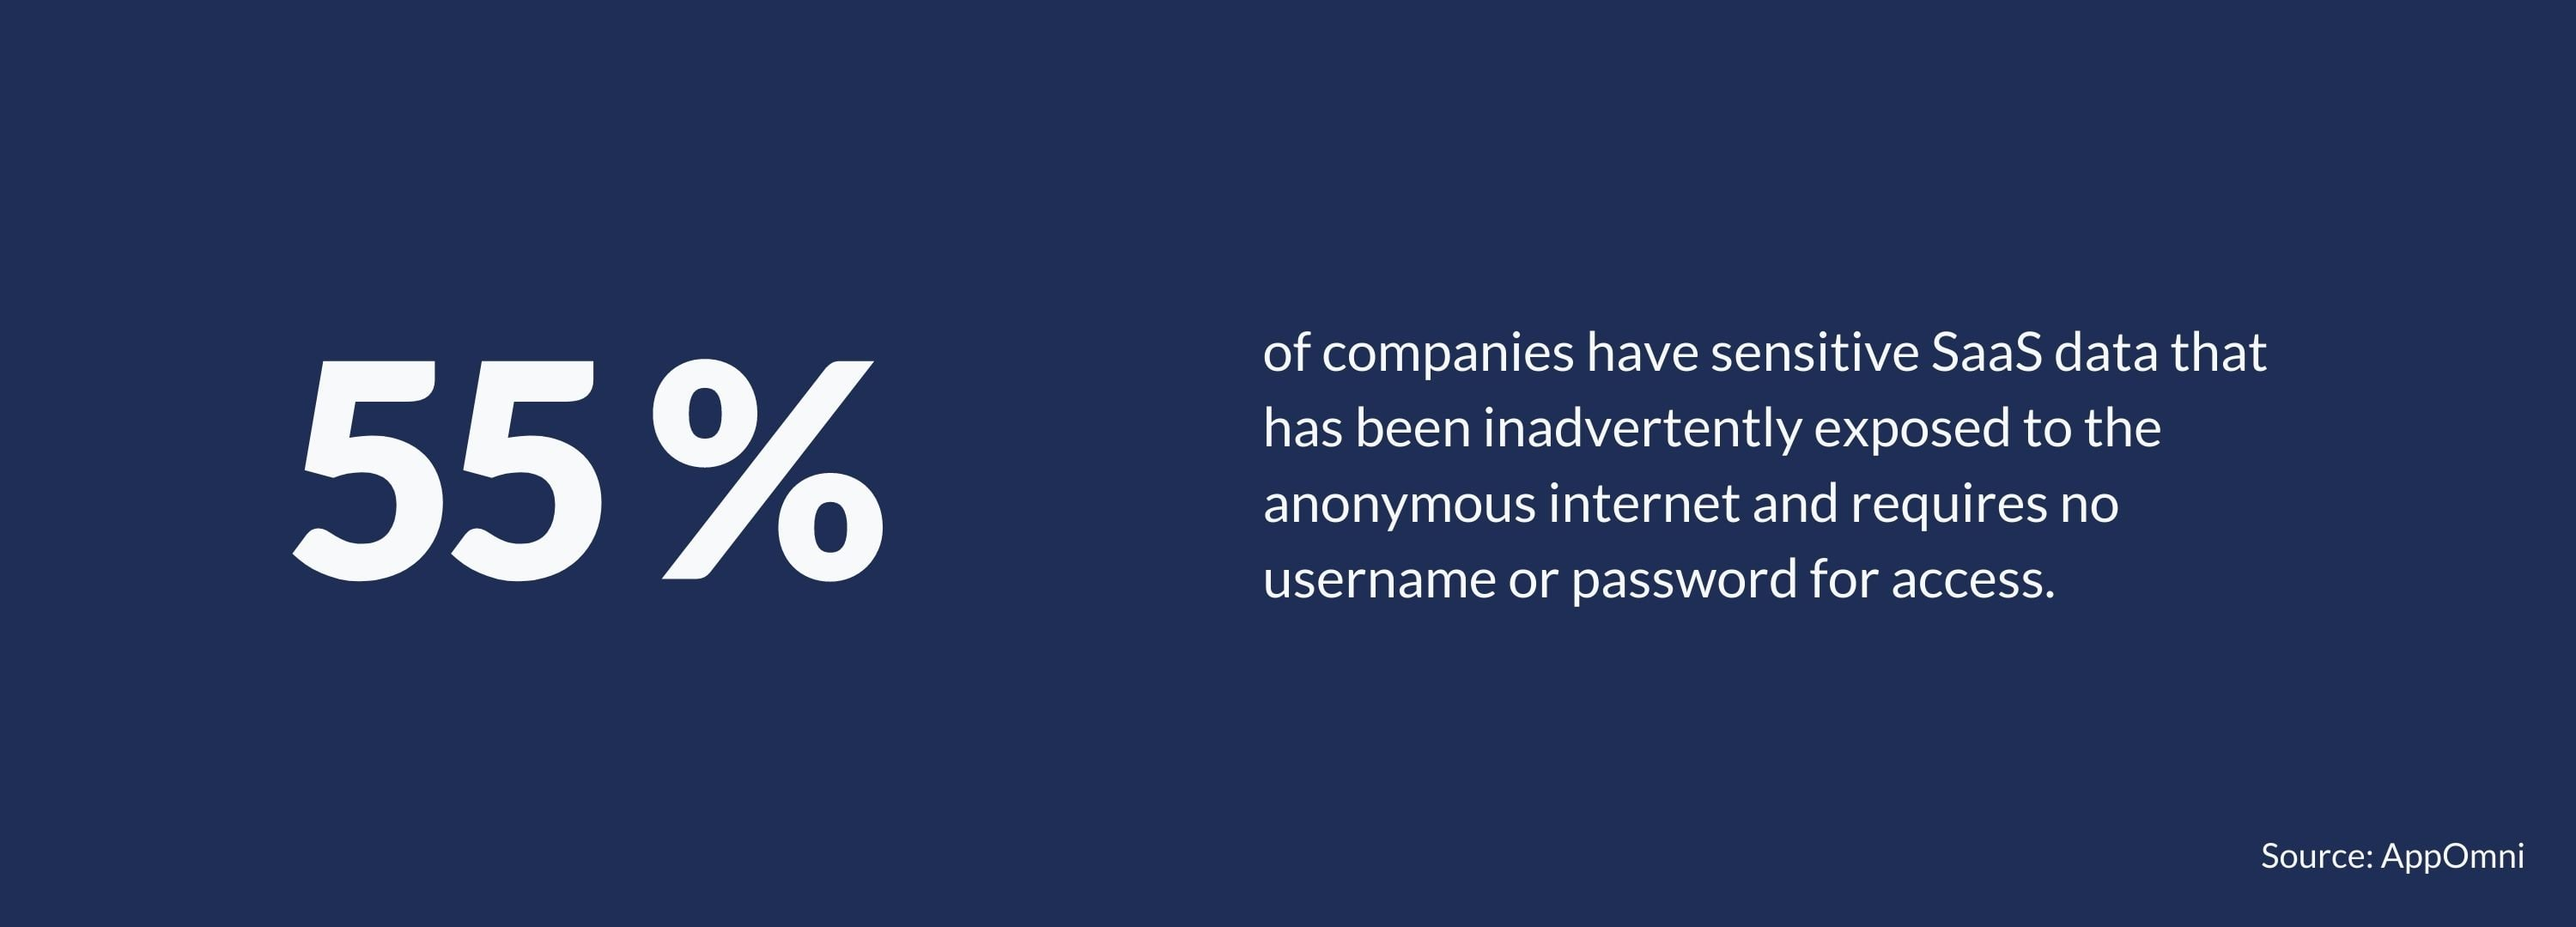 55% of companies have sensitive SaaS data callout